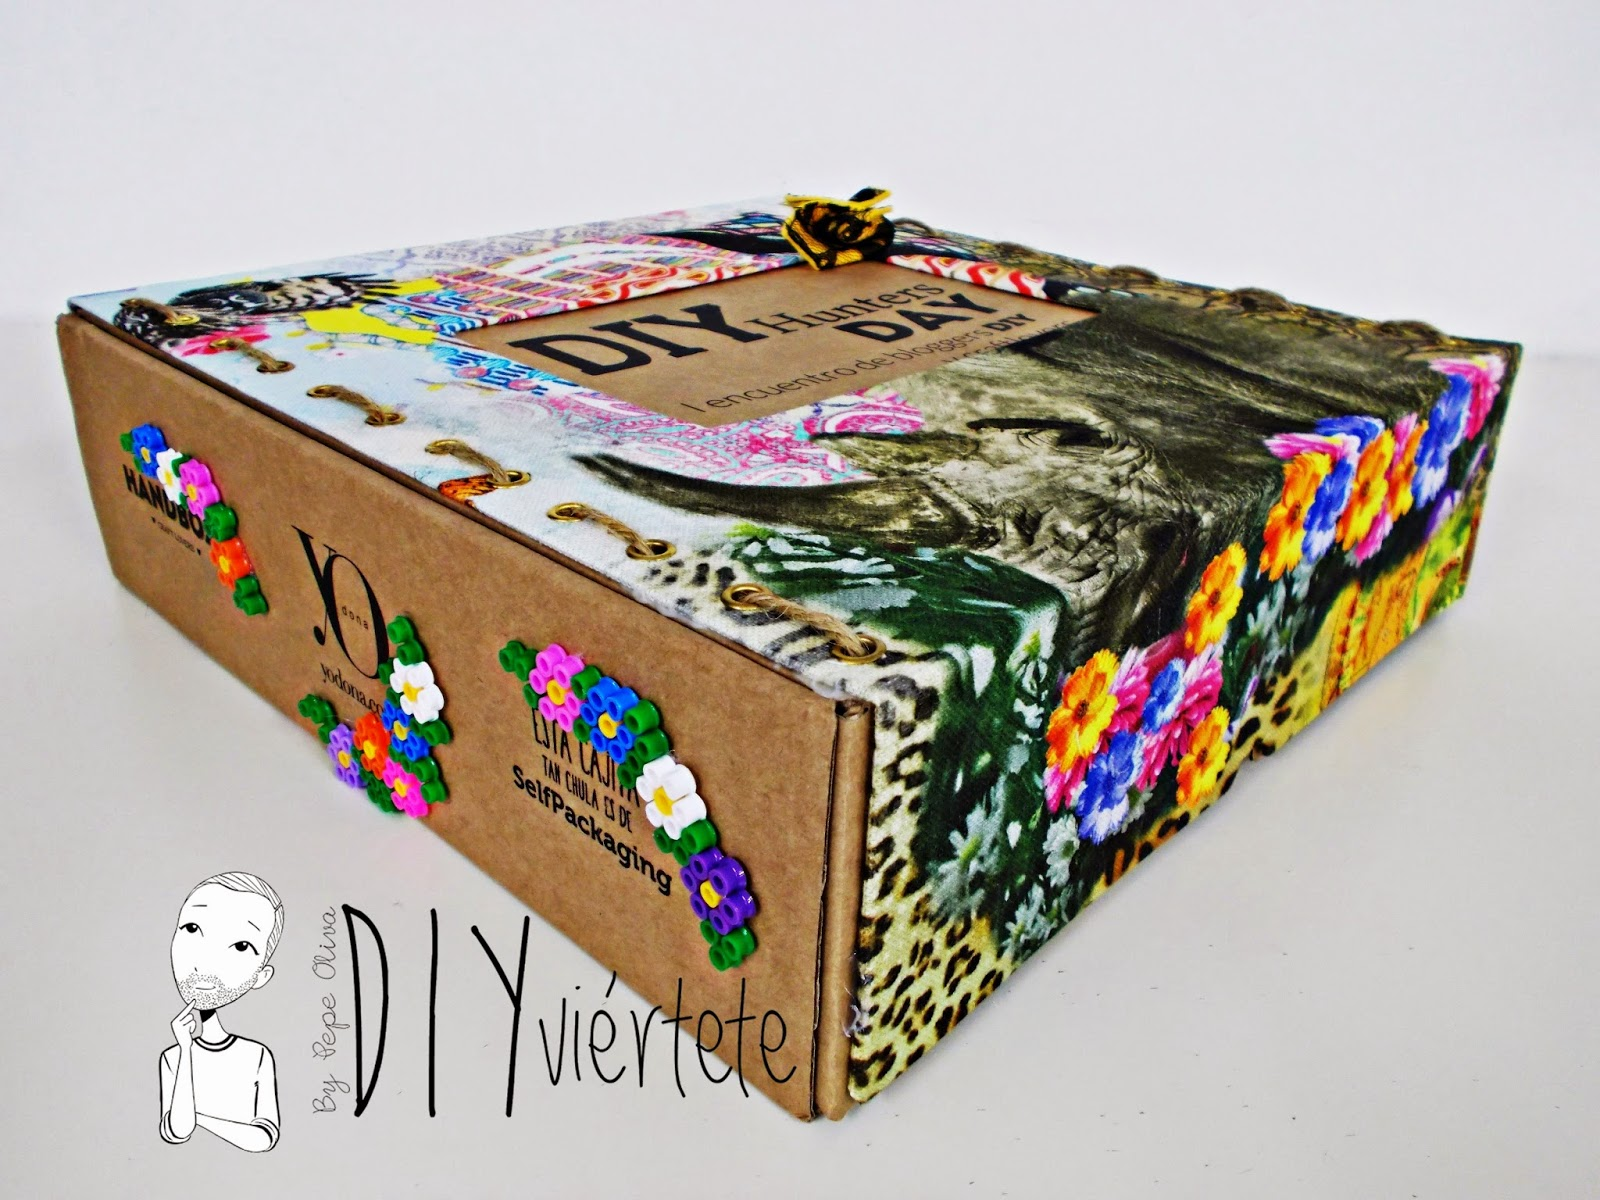 DIY-Do It Yourself-caja-cartón-selfpackaging-customizar-handbox-yodona-diyhuntersday-craftlovers-2